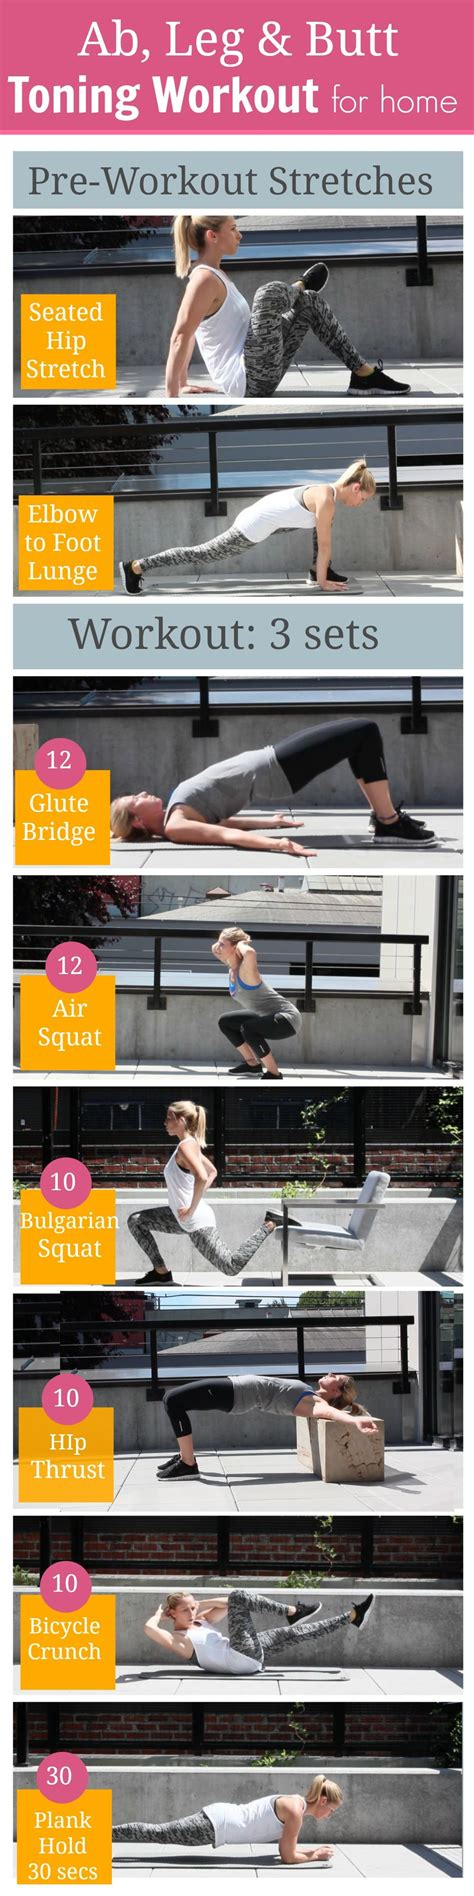 ab leg and workout at home pictures photos and